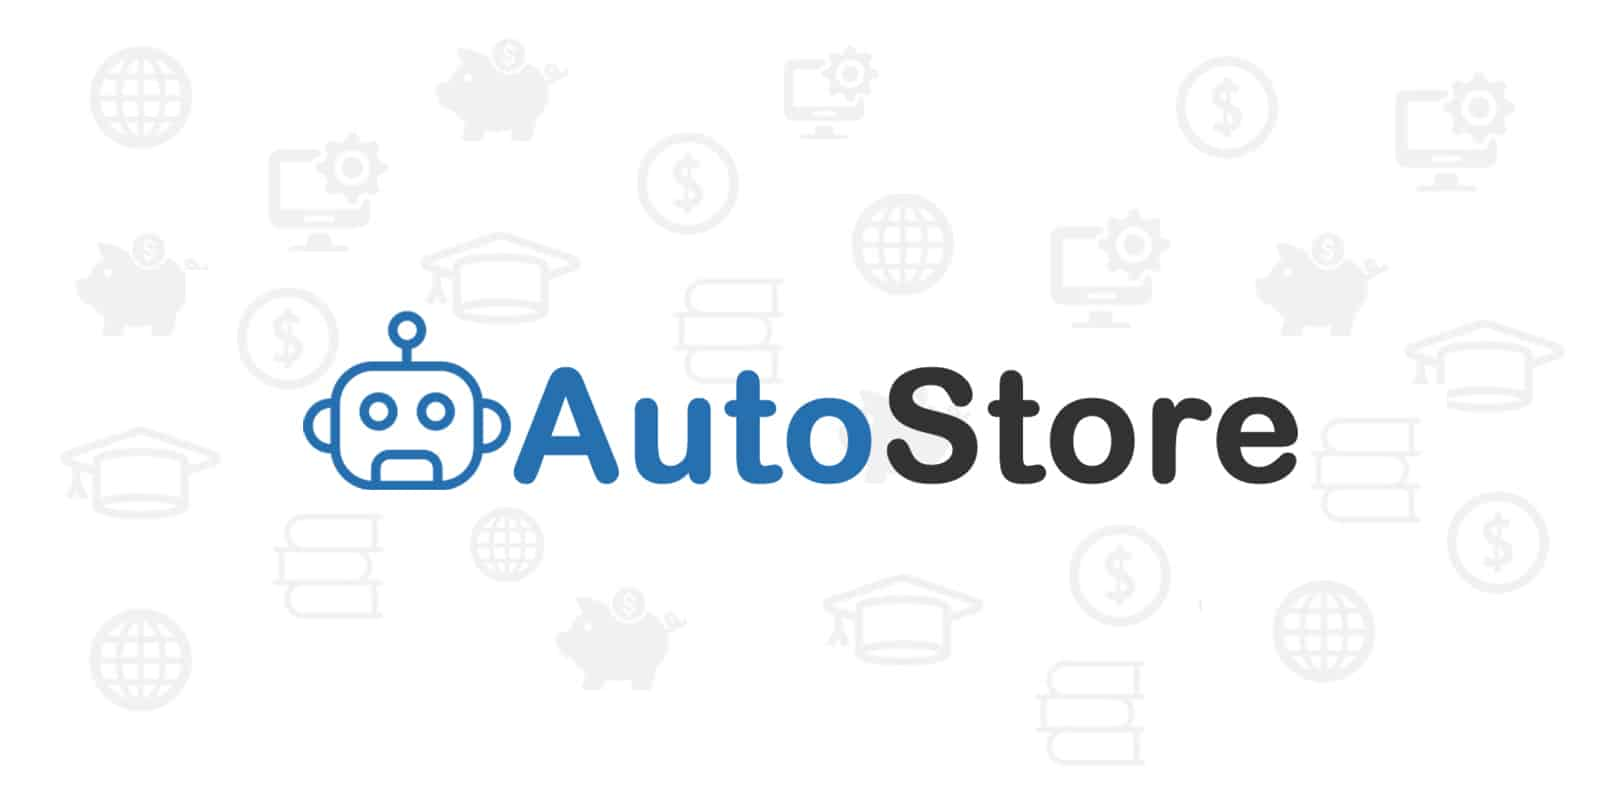 Auto store review